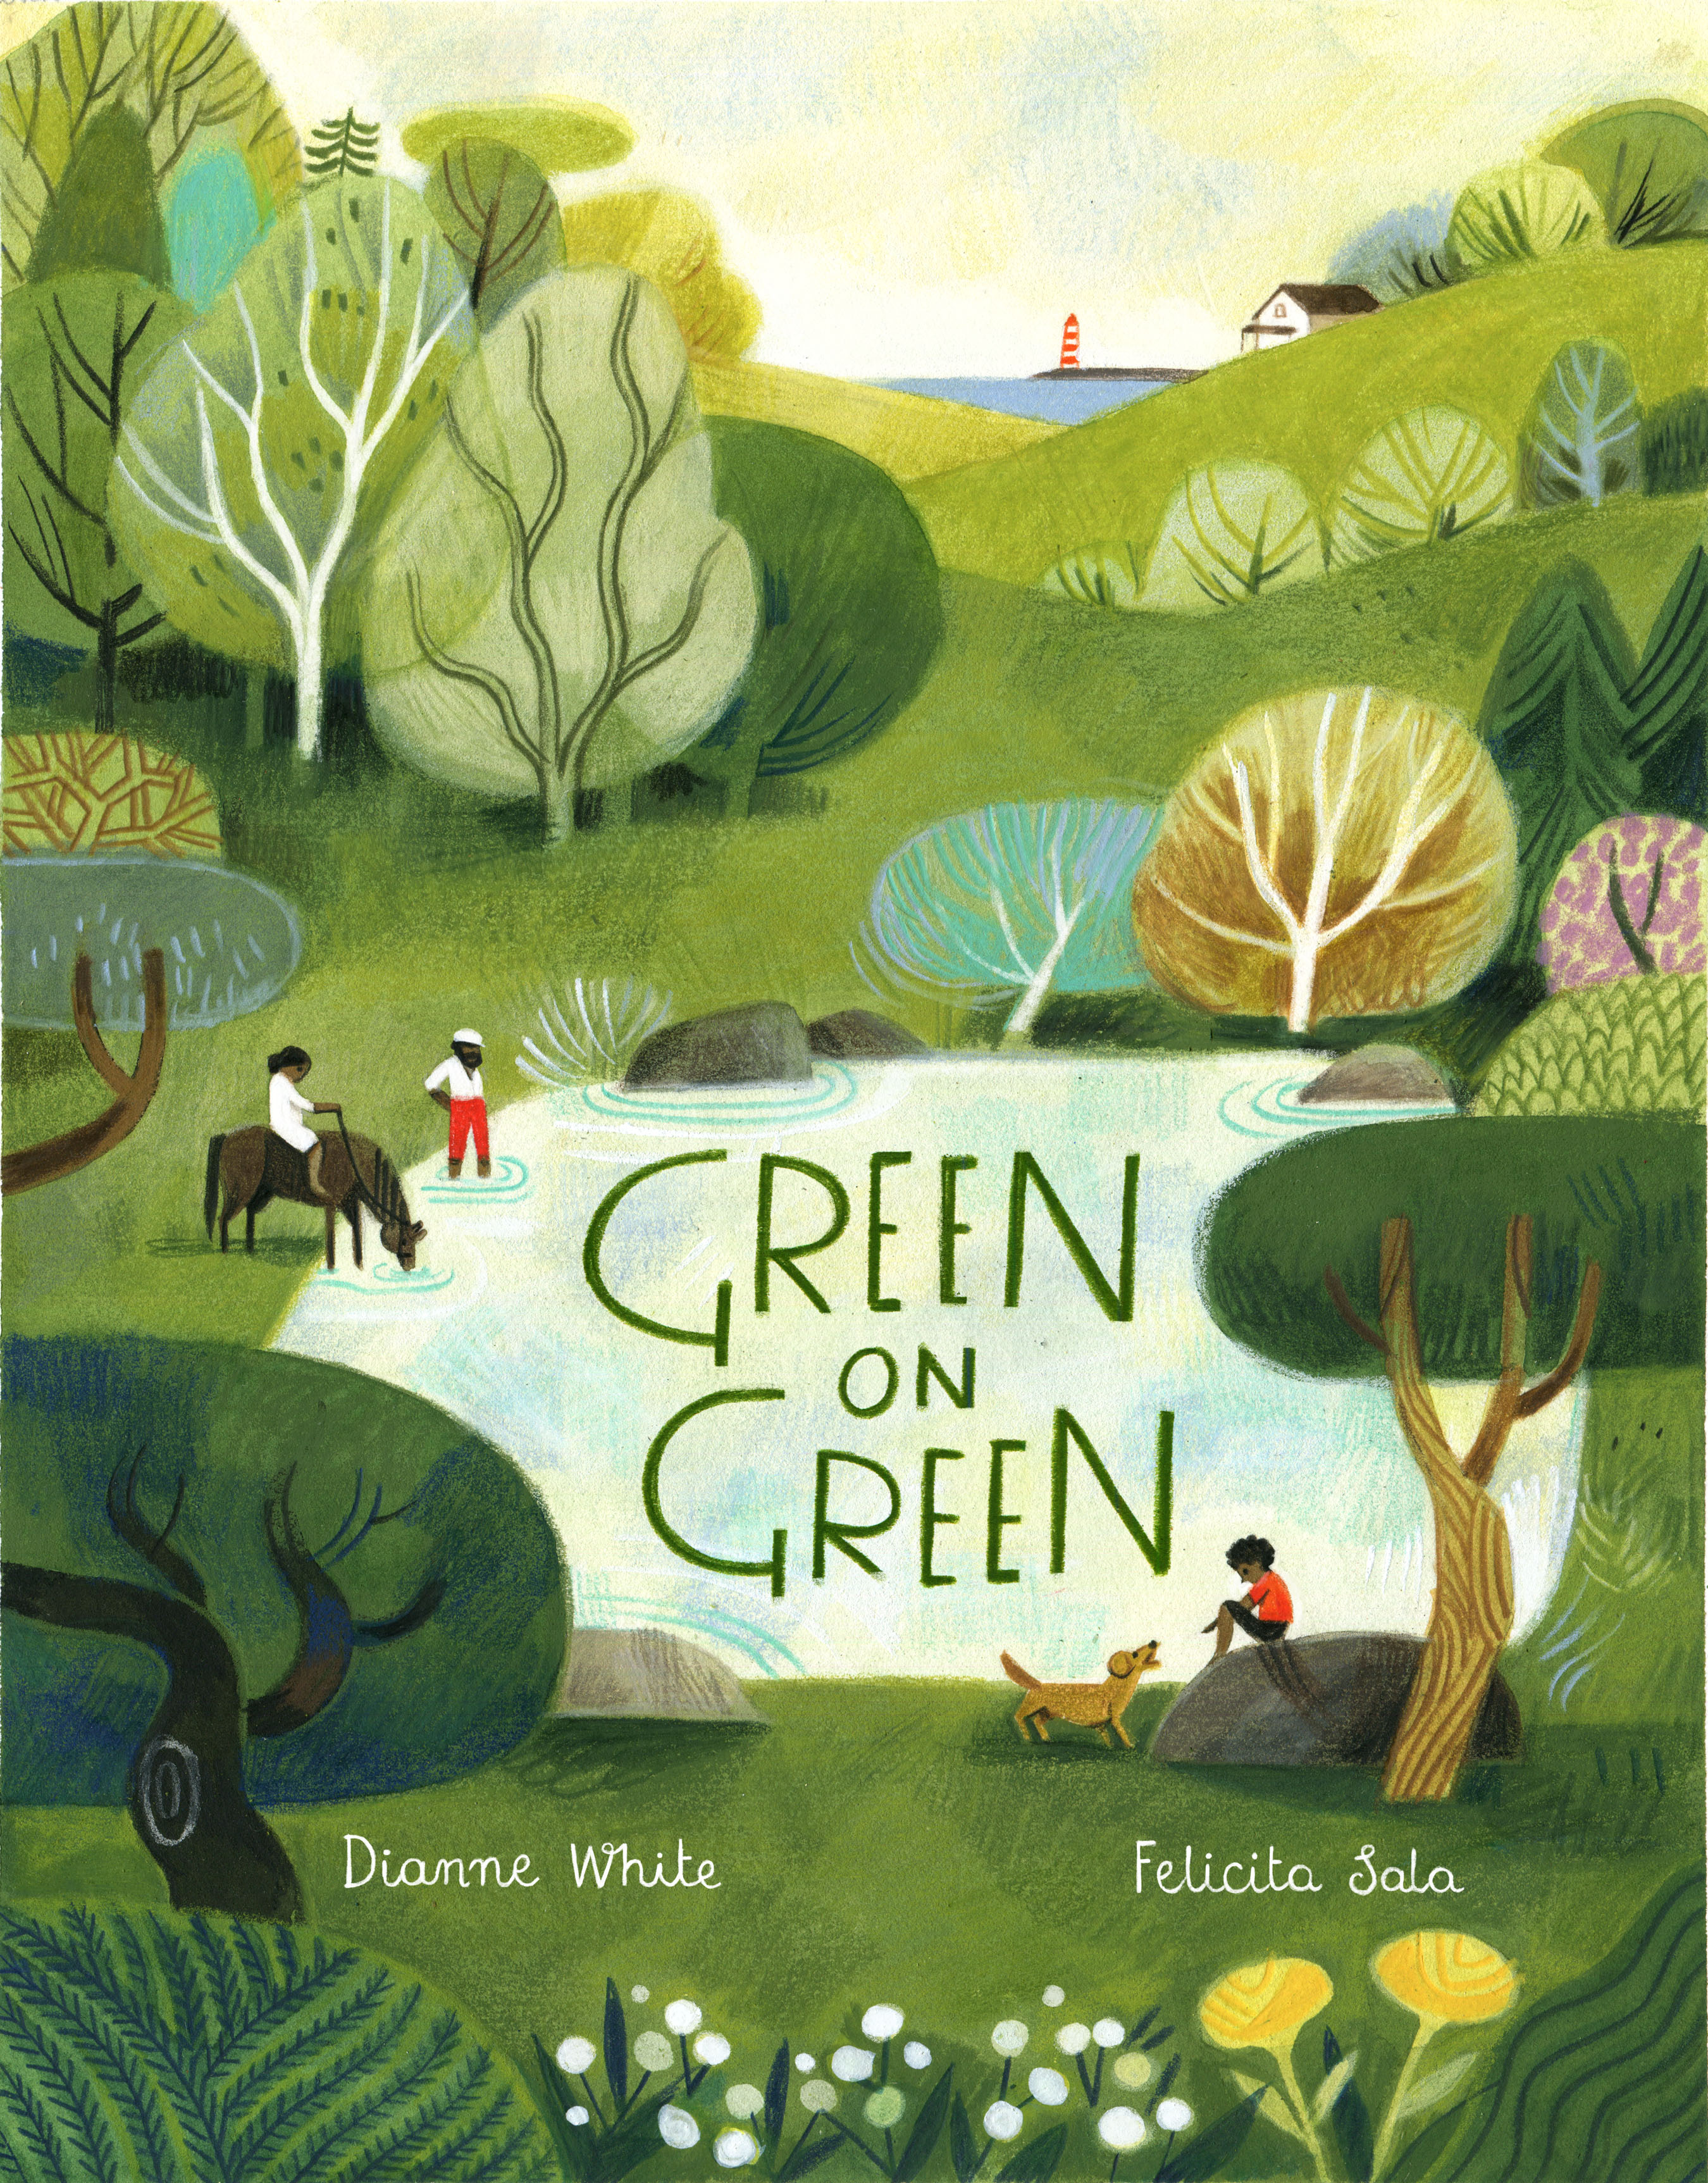 GREEN on GREEN Author: Dianne White Illustrator: Felicita Sala Publisher Name: Beach Lane/Simon & Schuster Date of Publication: March 17, 2020